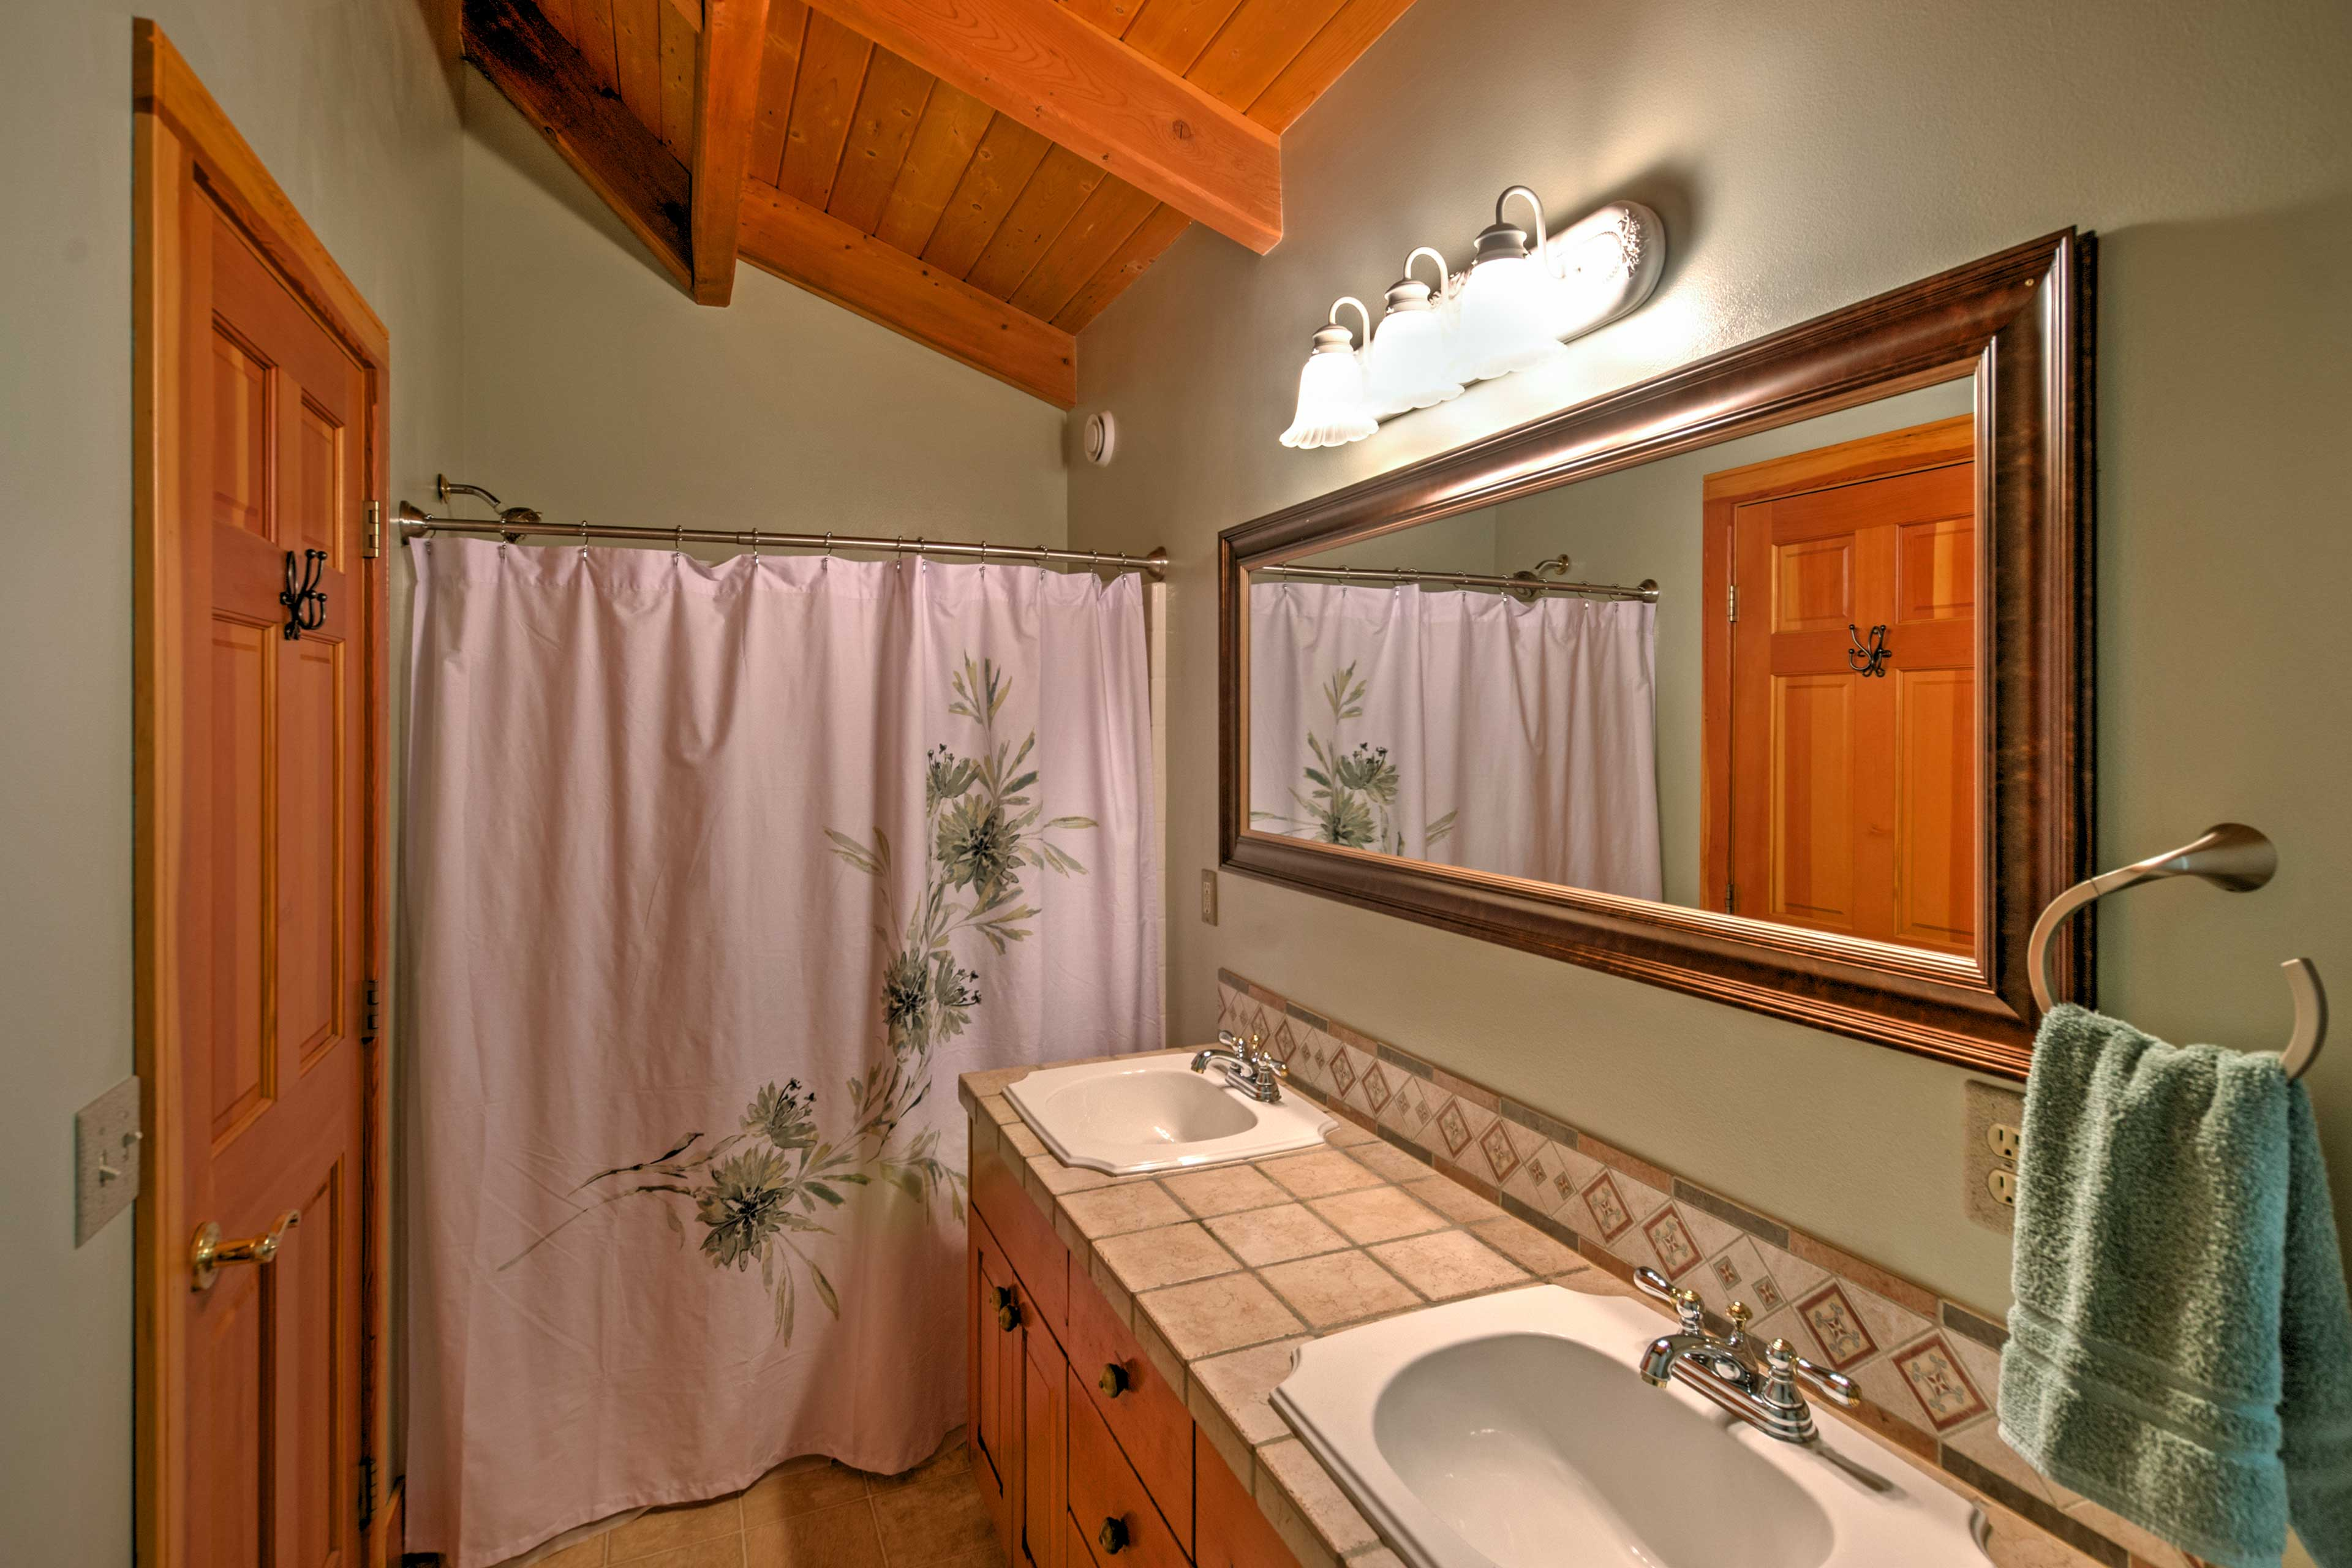 Dual sinks make it easy for multiple people to utilize the bathroom.